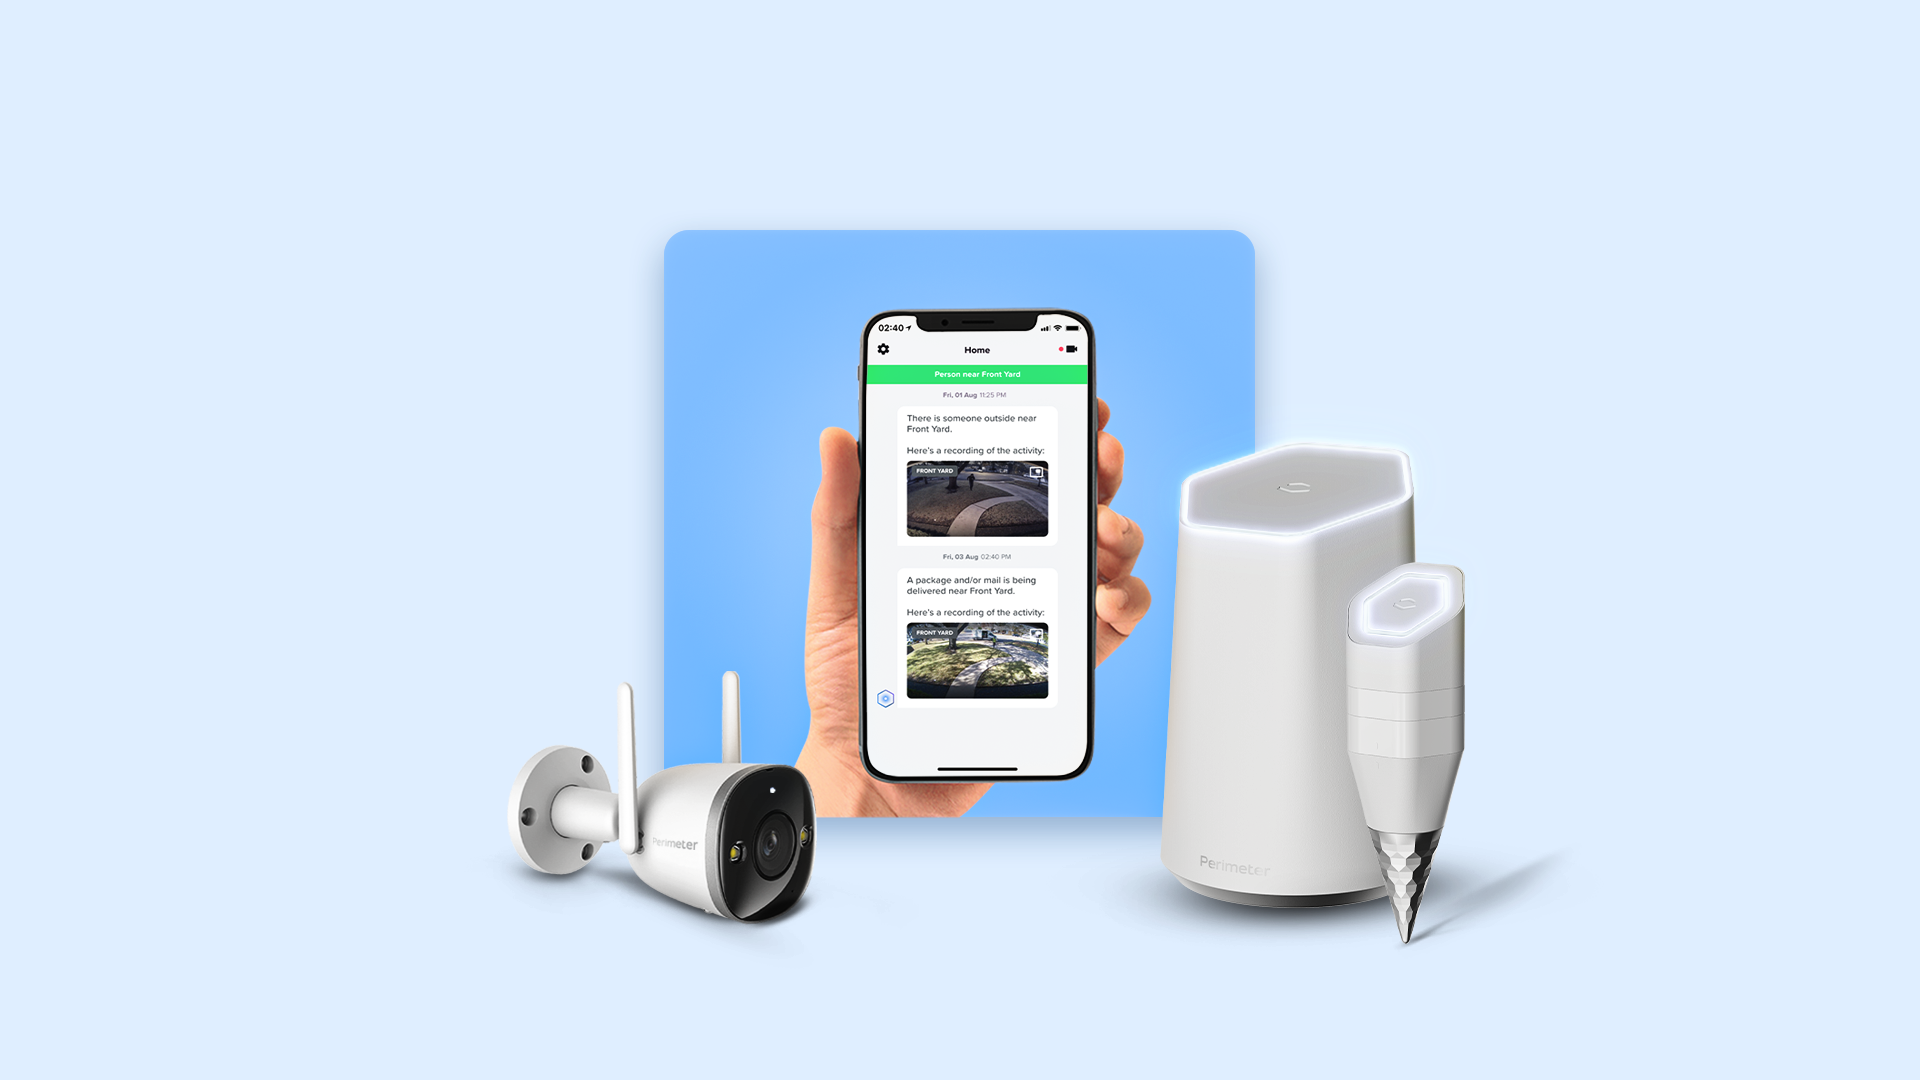 Image of a hand holding a phone with the Perimeter app open. In front of that, the Perimeter Camera, Homebase and Ground Sensor